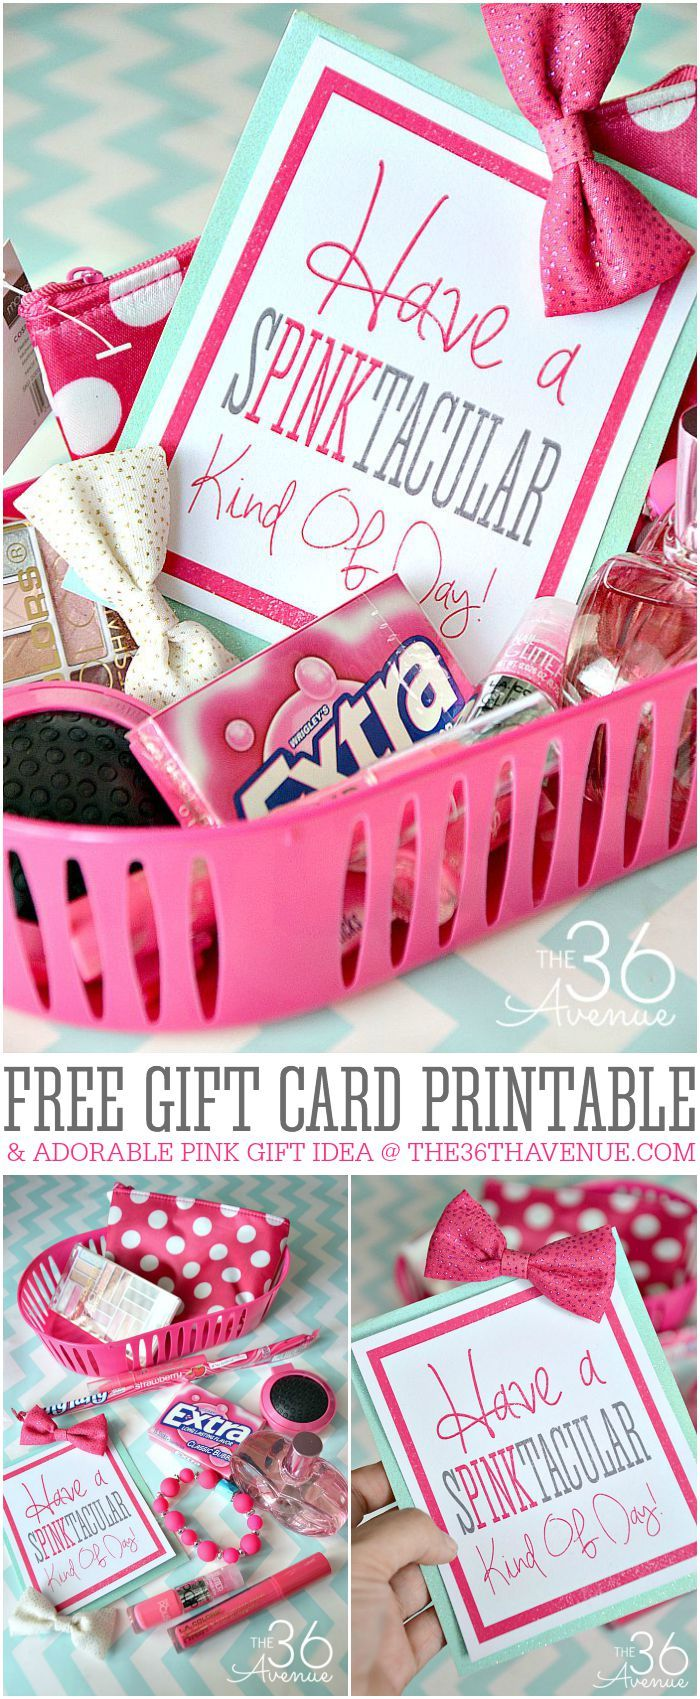 Gift Idea and Free Gift Card Printable Pink gift ideas